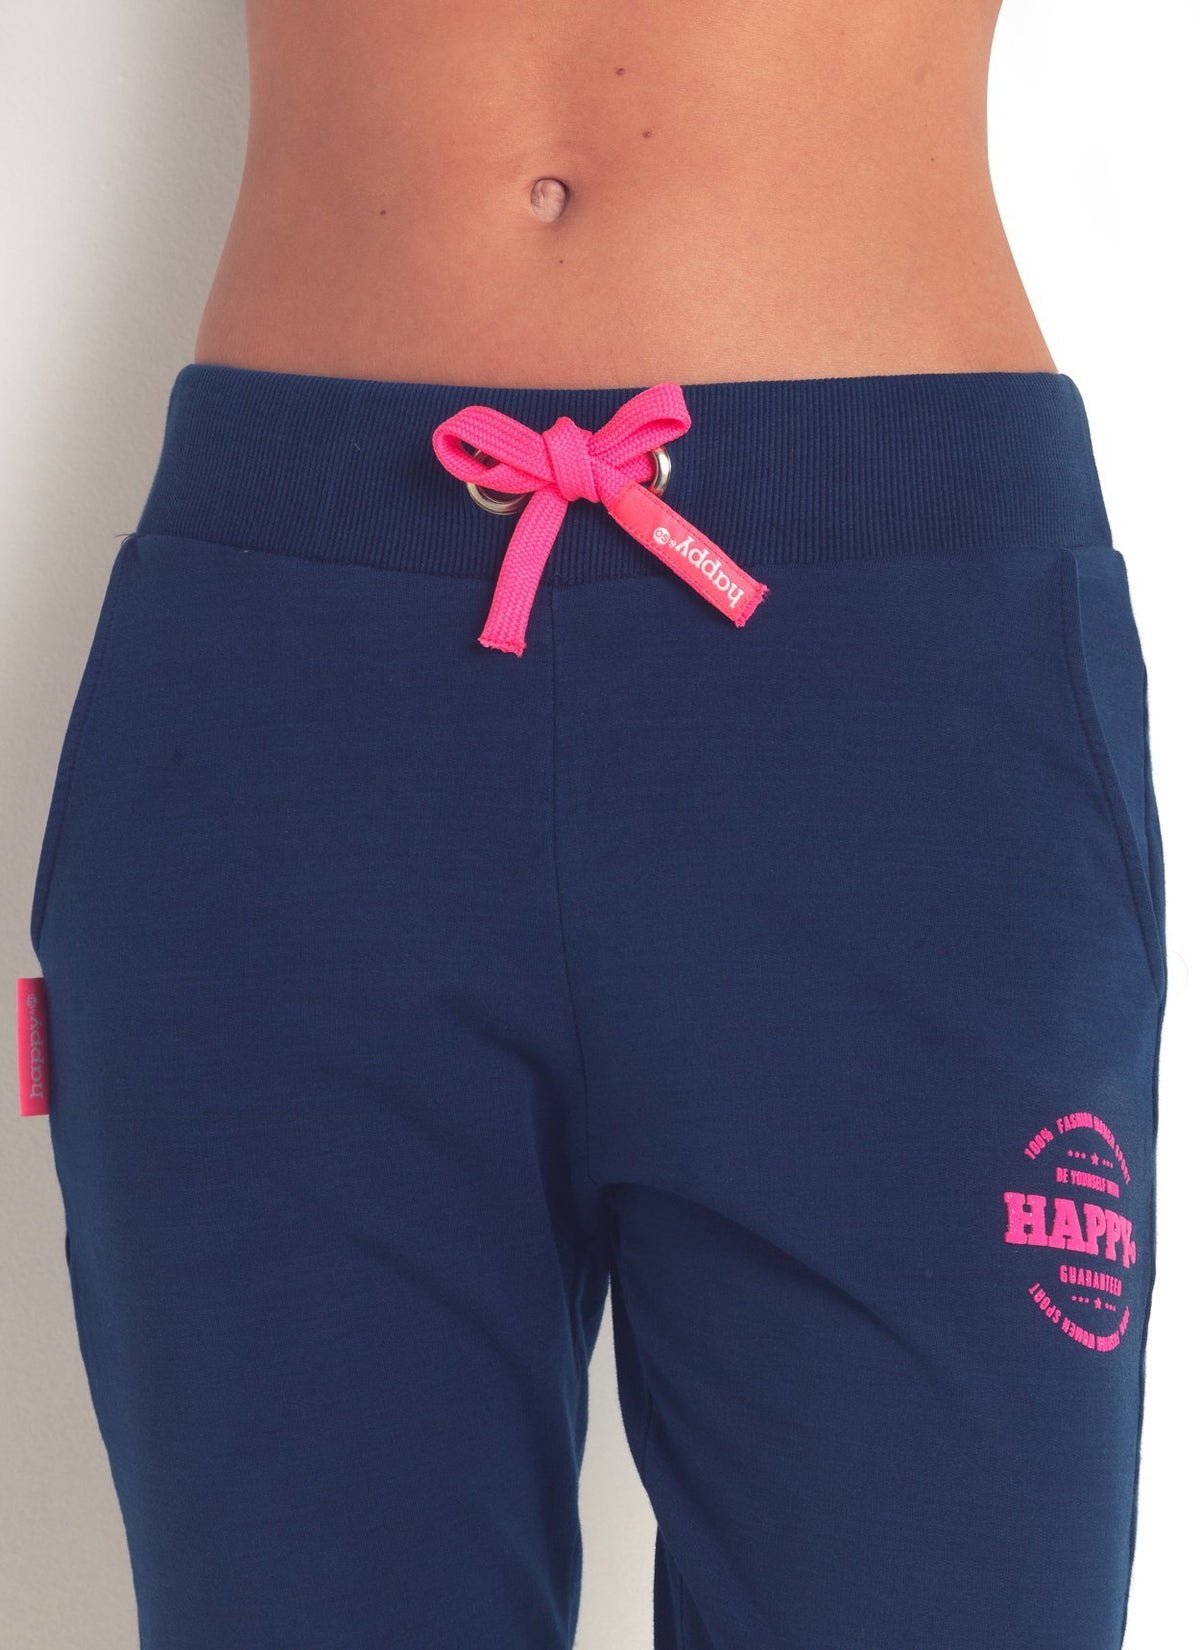 PANTALON MOLLETON LEGER MARINE ROSE FLUO